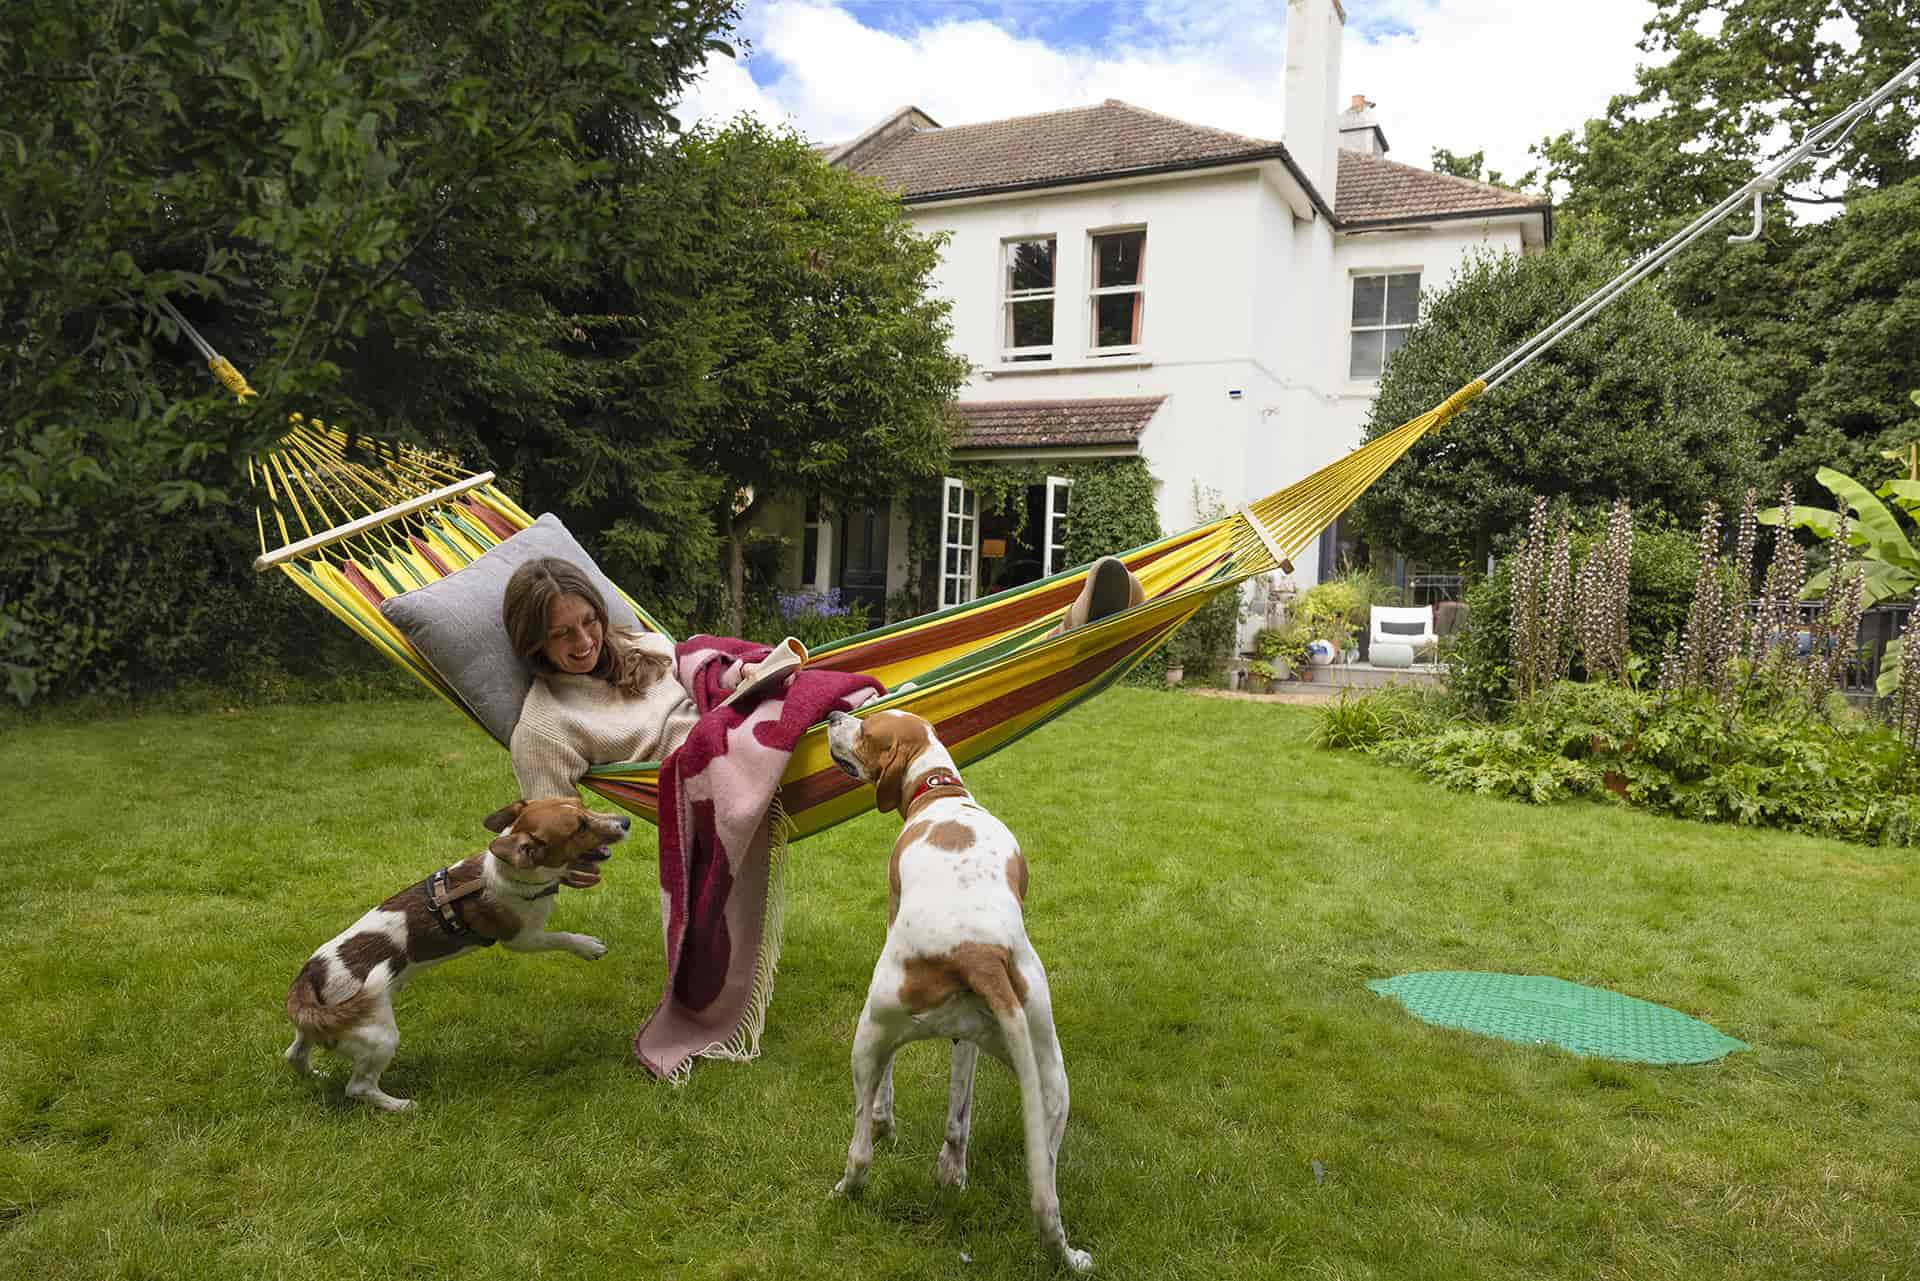 A lady in her garden on a hammock with her two dogs, in the background you can see a underground tank and her rural home